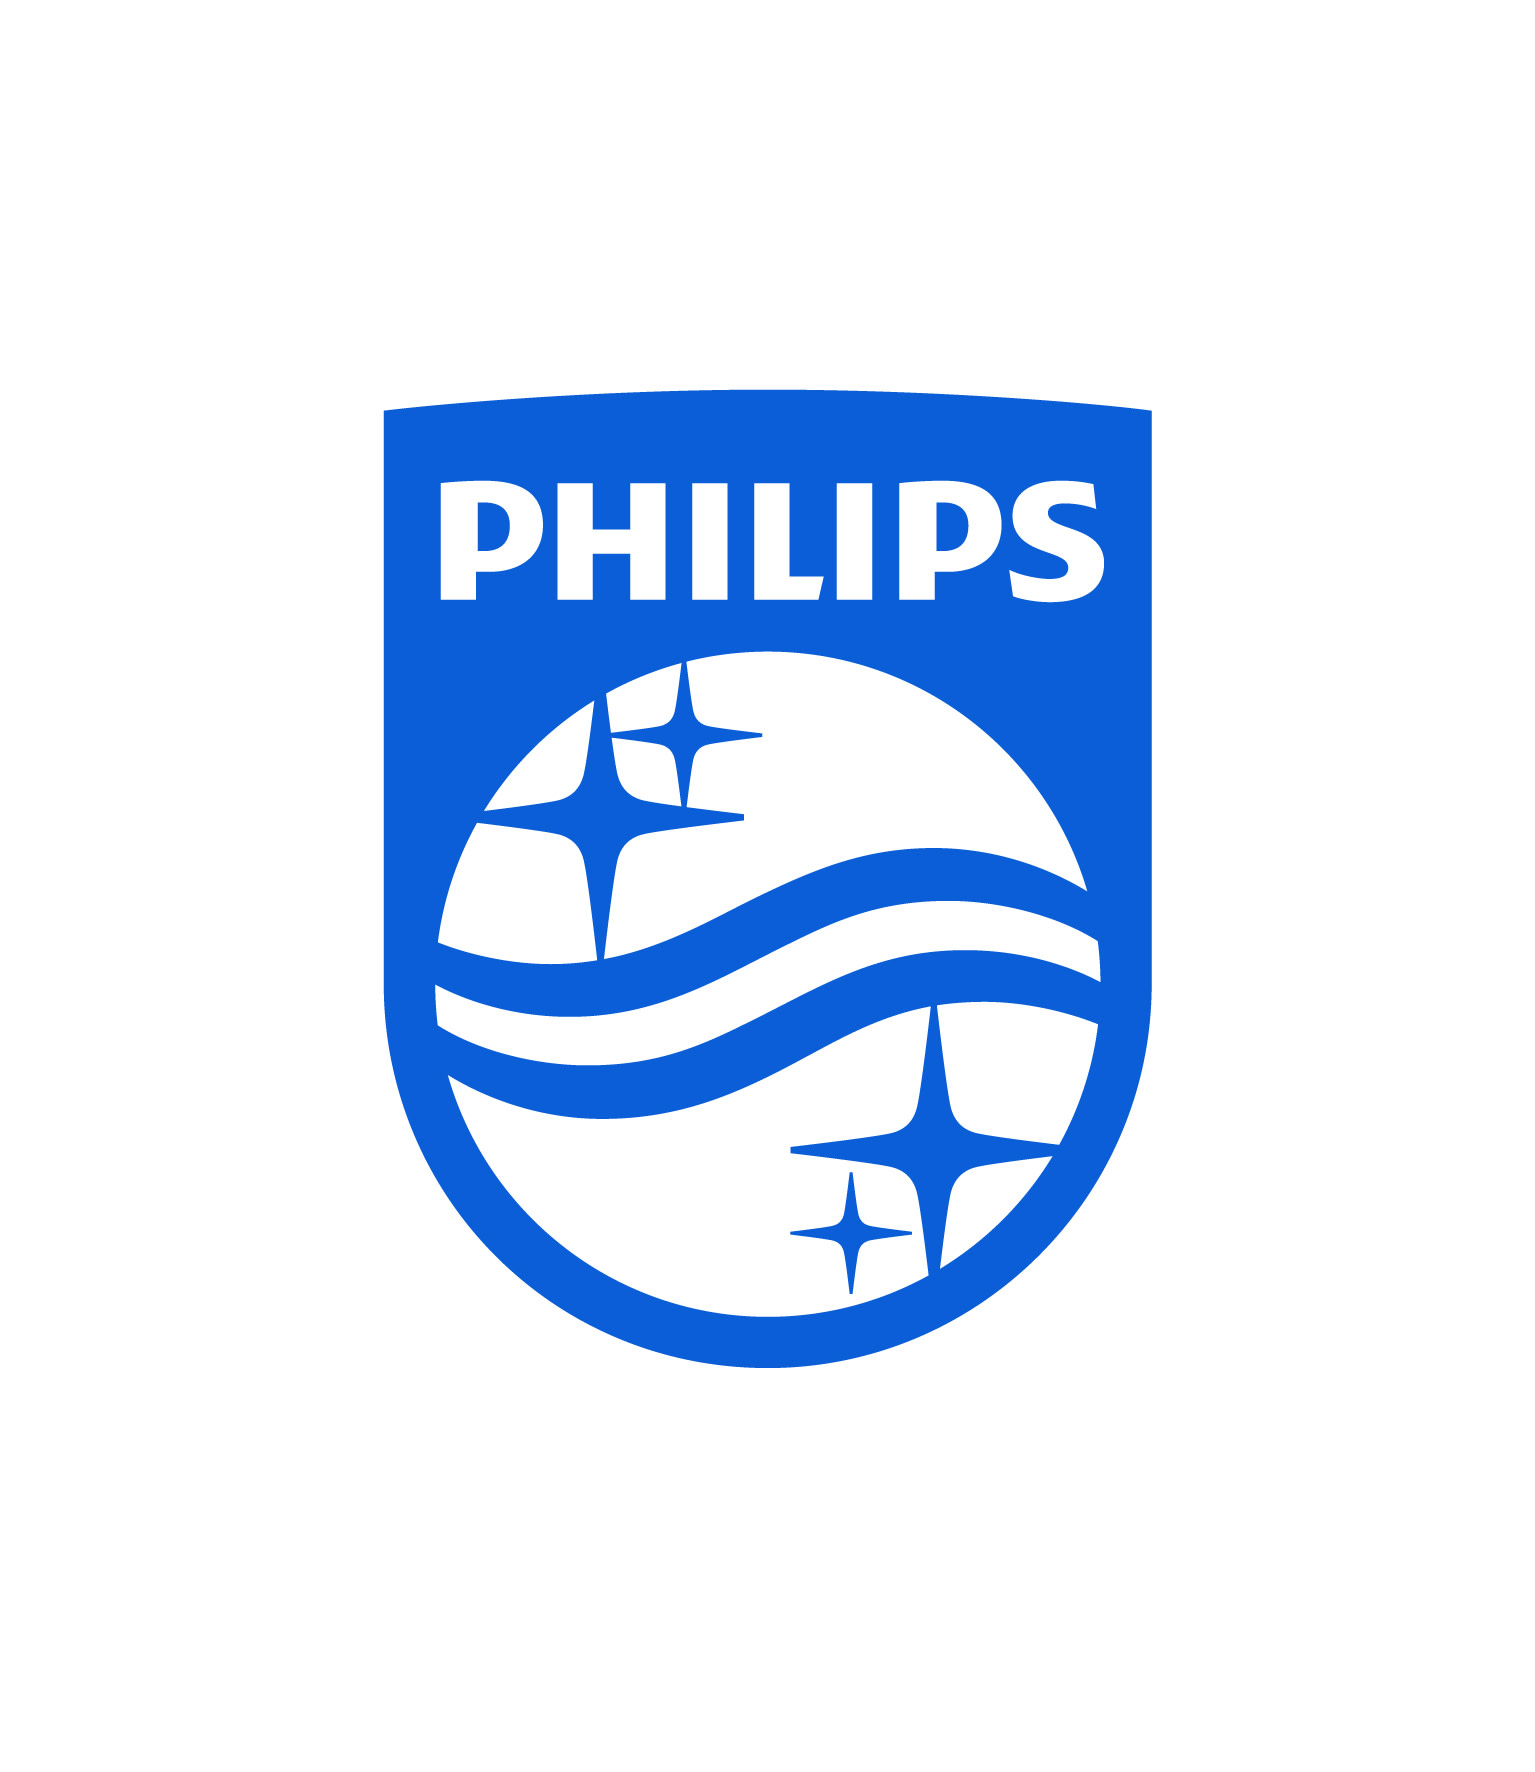 blue and white philips logo